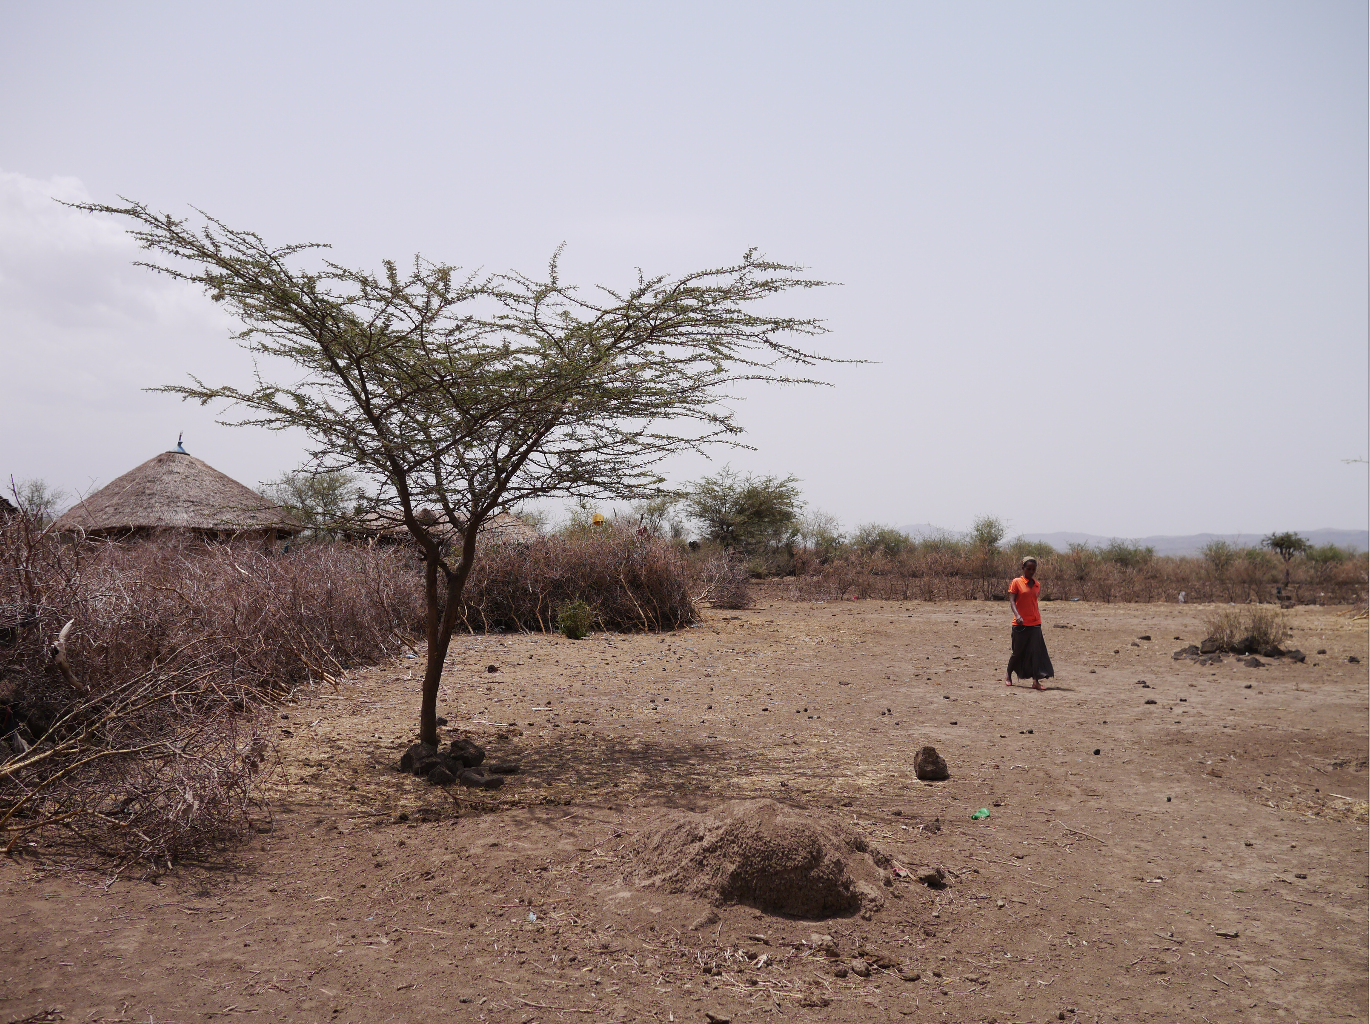 This village is 7km from water, the children have no access to school, and no one is literate in any language or speaks any English. Yet in Ethiopia, all schooling is in English after grade 4.